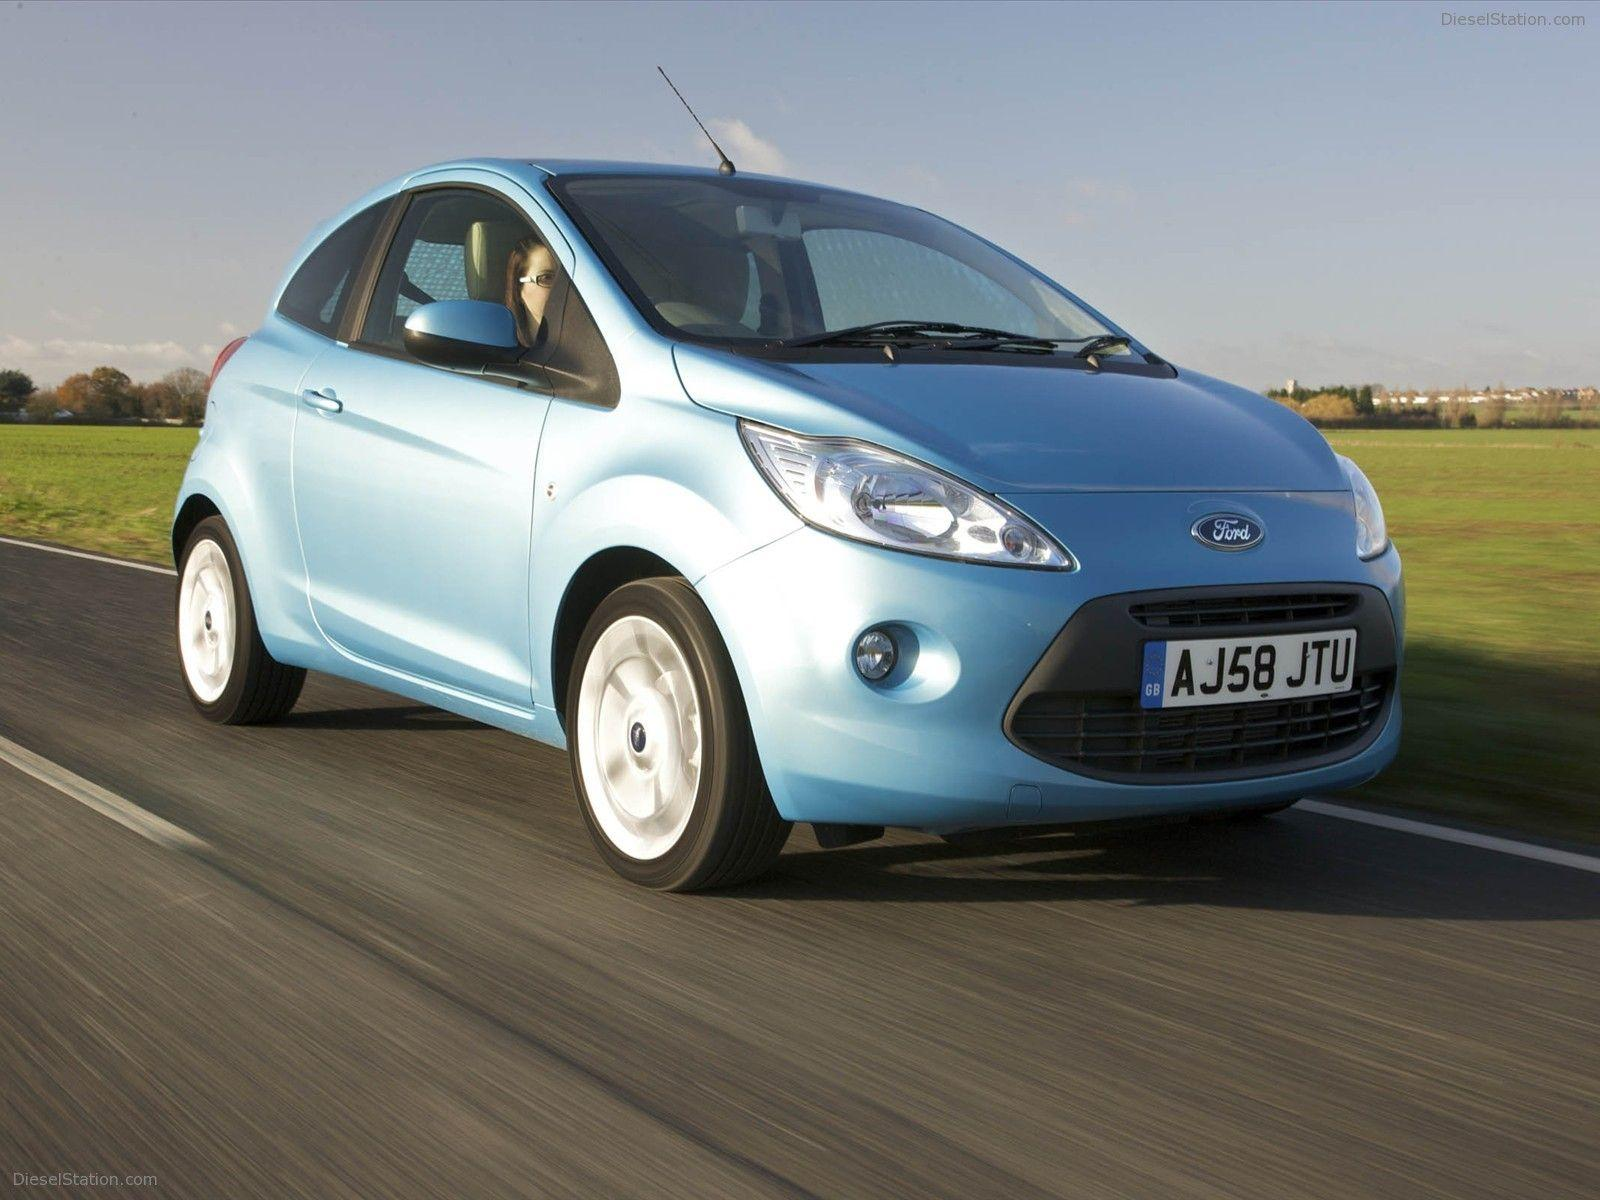 Ford Ka 2010 Exotic Car Wallpapers #14 of 30 : Diesel Station